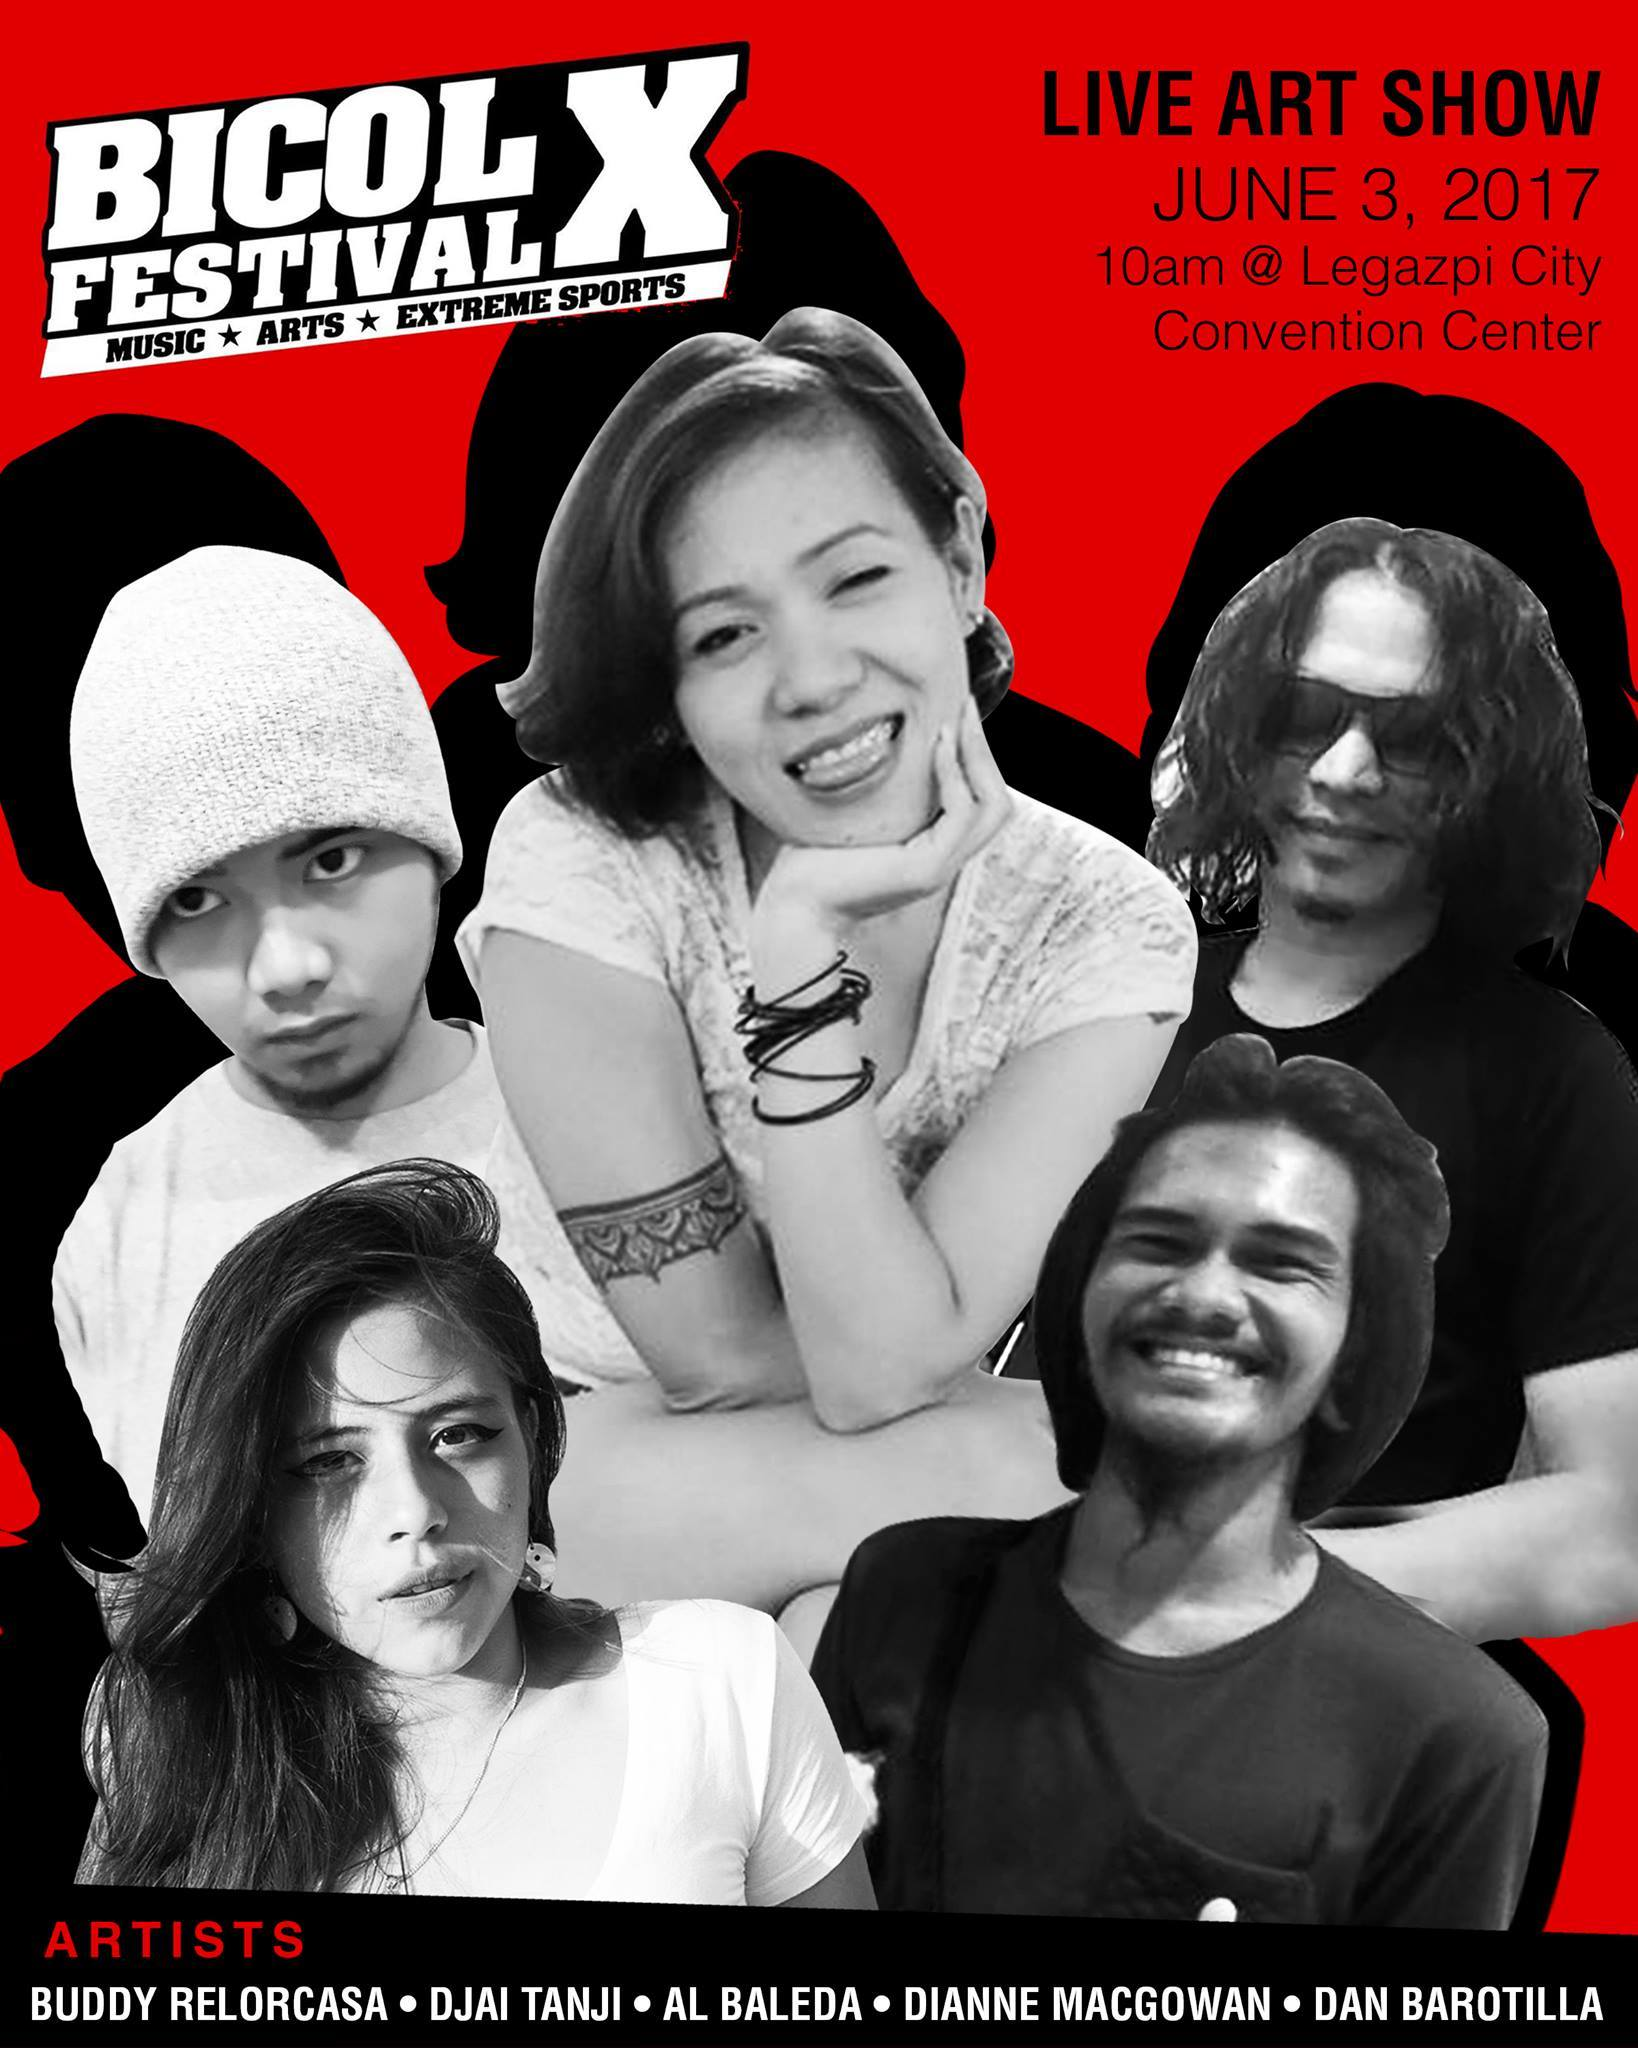 BICOL X PromotionsBICOL X Festival : The Final Show Page Liked · Yesterday · BICOL X Festival LIVE ARTSHOW featuring Buddy Relorcasa, Djai Tanji, Al Baleda, Dianne Macgowan and Dan Barotilla! See you on Saturday for #BICOLXFestival at Legazpi City Convention Center! For tickets, contact 0927 603 6651 / 0999 405 8974.